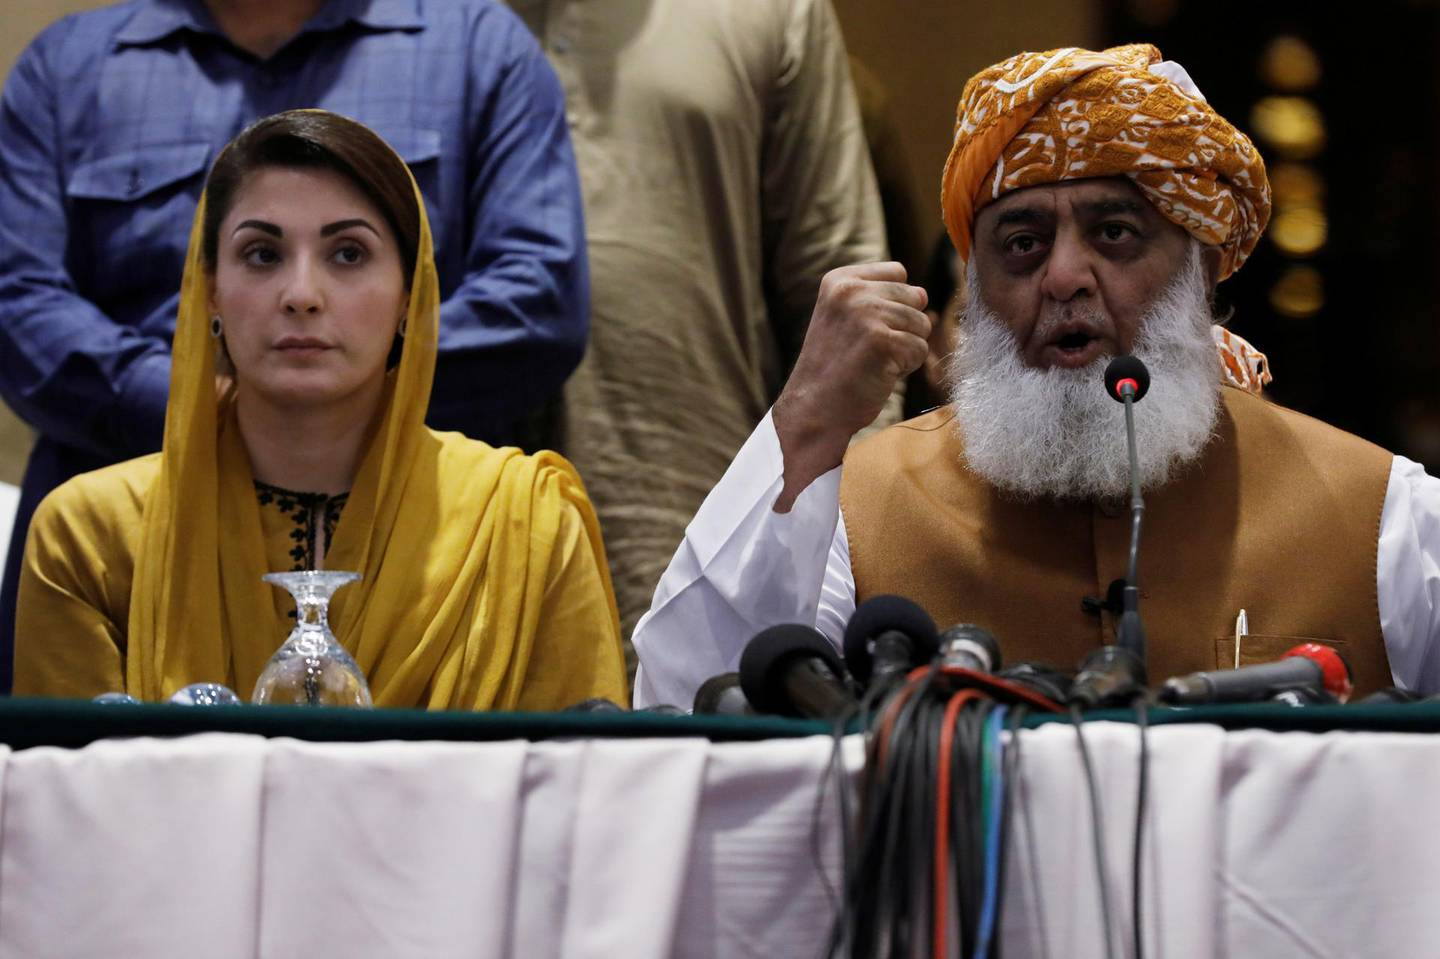 Fazal-ur Rehman, of the Jamiat Ulema-e-Islam-Fazal (JUI-F) and president of the Pakistan Democratic Movement (PDM), an alliance of political opposition parties, along with Maryam Nawaz, the daughter of Pakistan's former Prime Minister Nawaz Sharif address a news conference in Karachi, Pakistan October 19, 2020. REUTERS/Akhtar Soomro